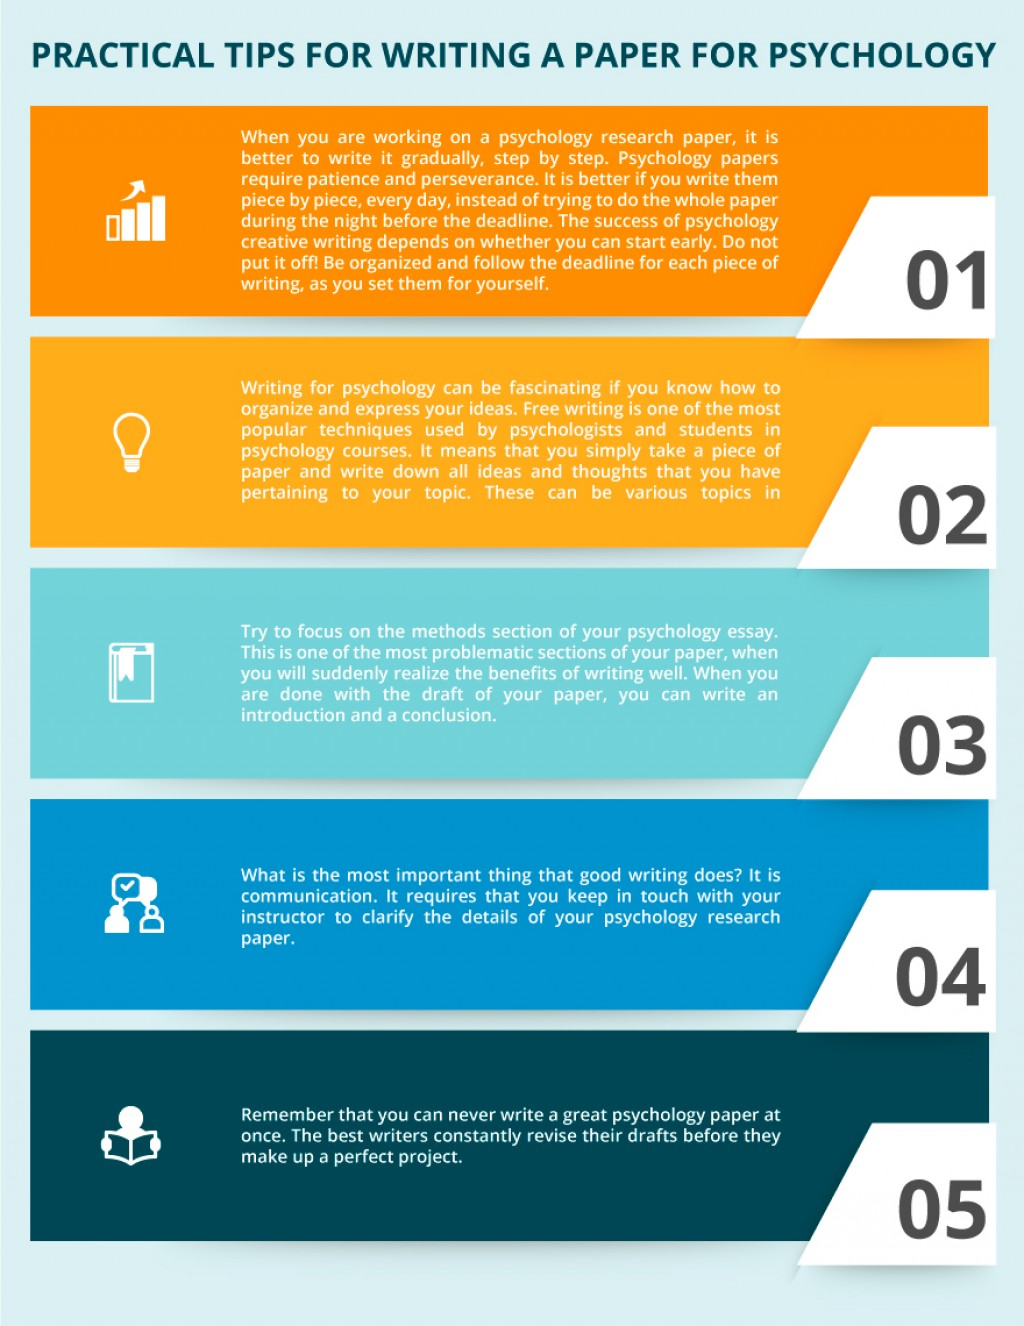 010 Research Paper Tips For Papers Infographic Practical Writing Psychology  Wondrous Good EffectiveLarge